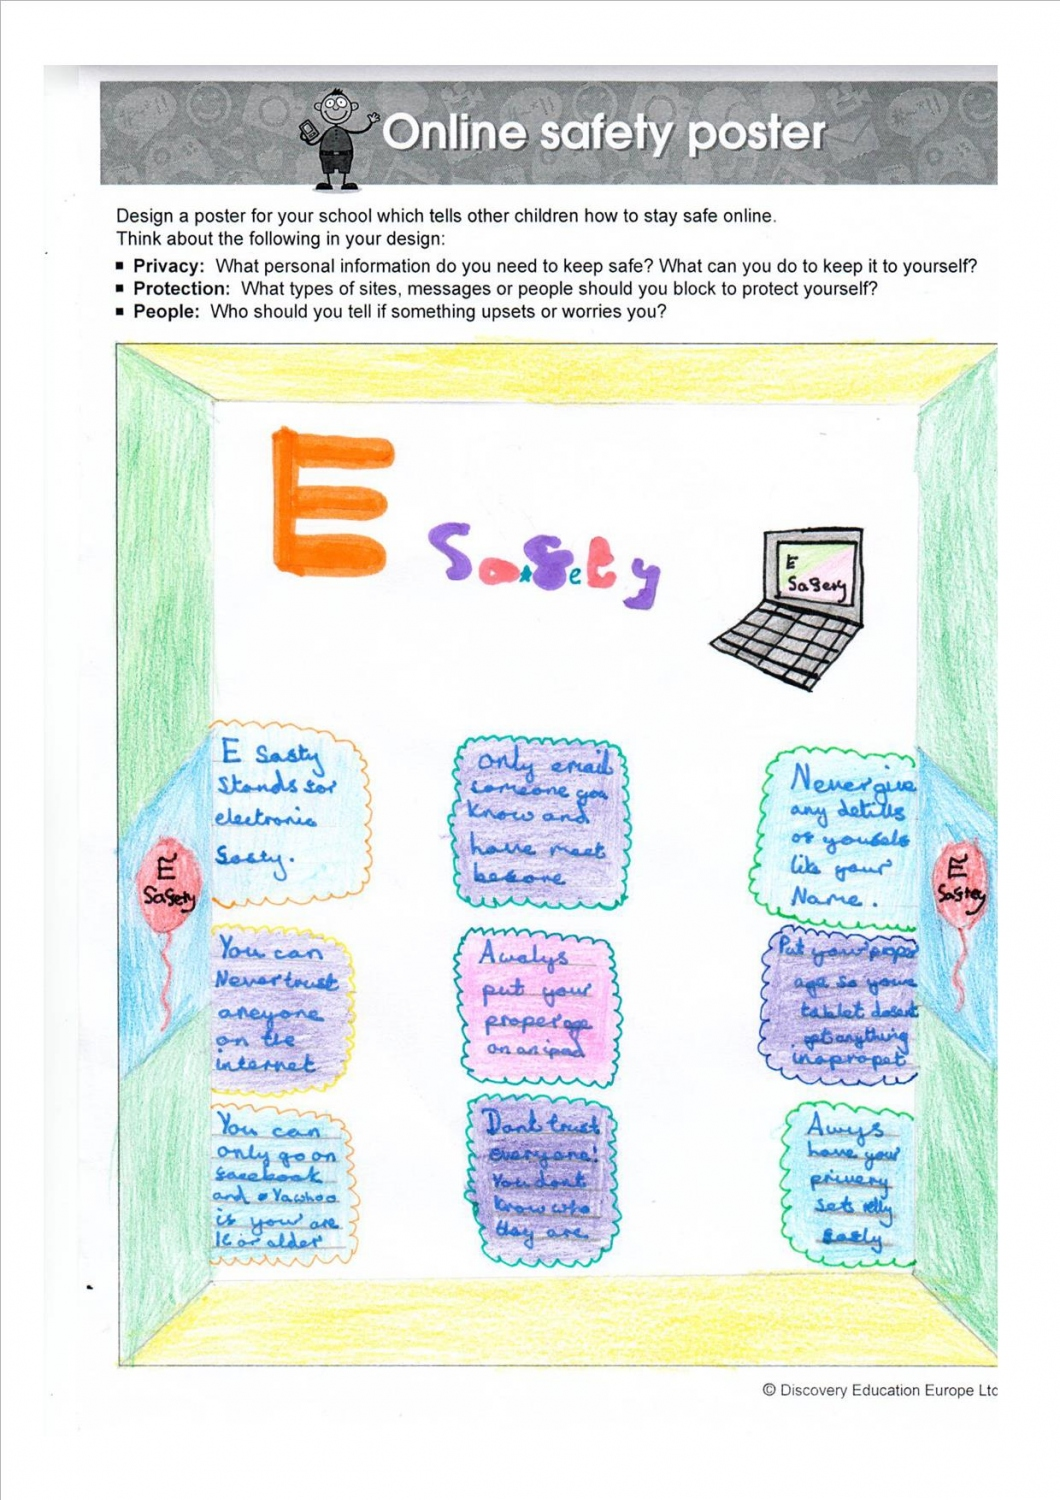 E safety poster designs - Poster 1 Poster 2